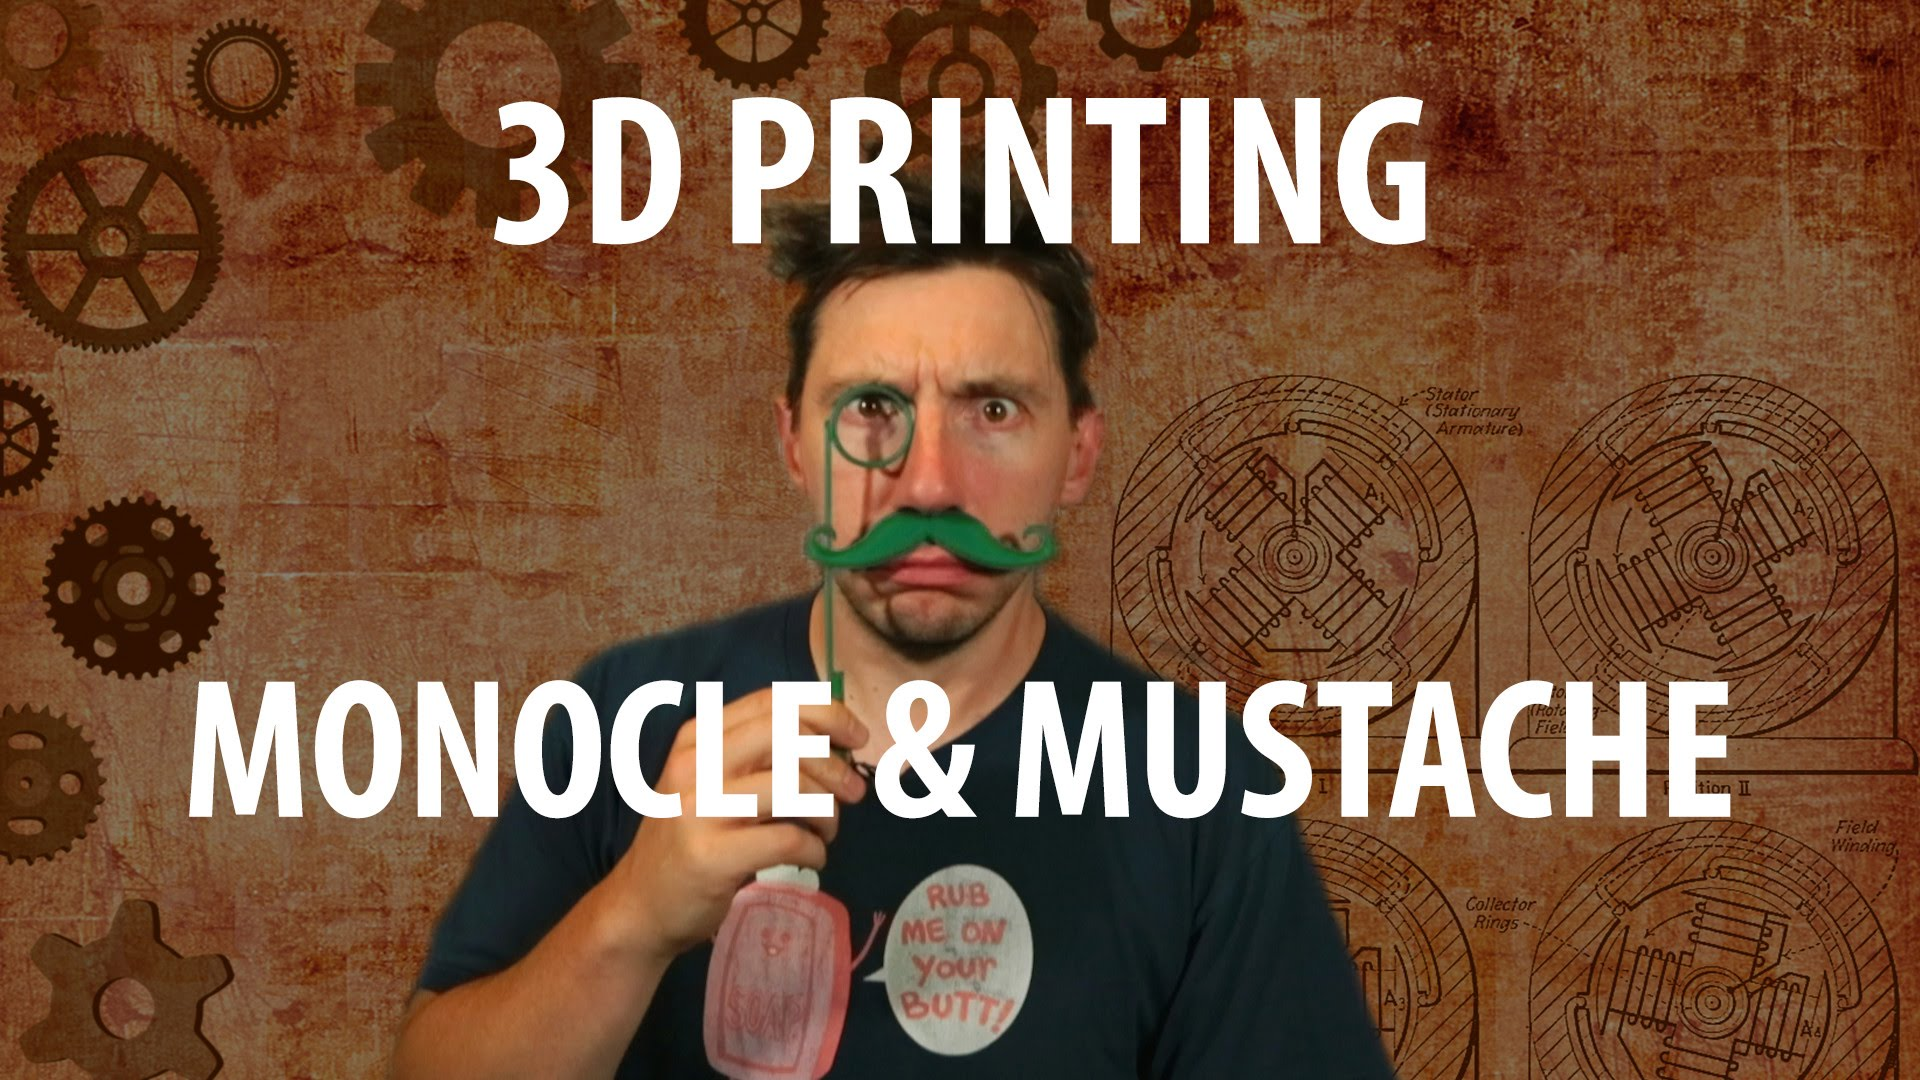 3D Printing a Monocle and Mustache